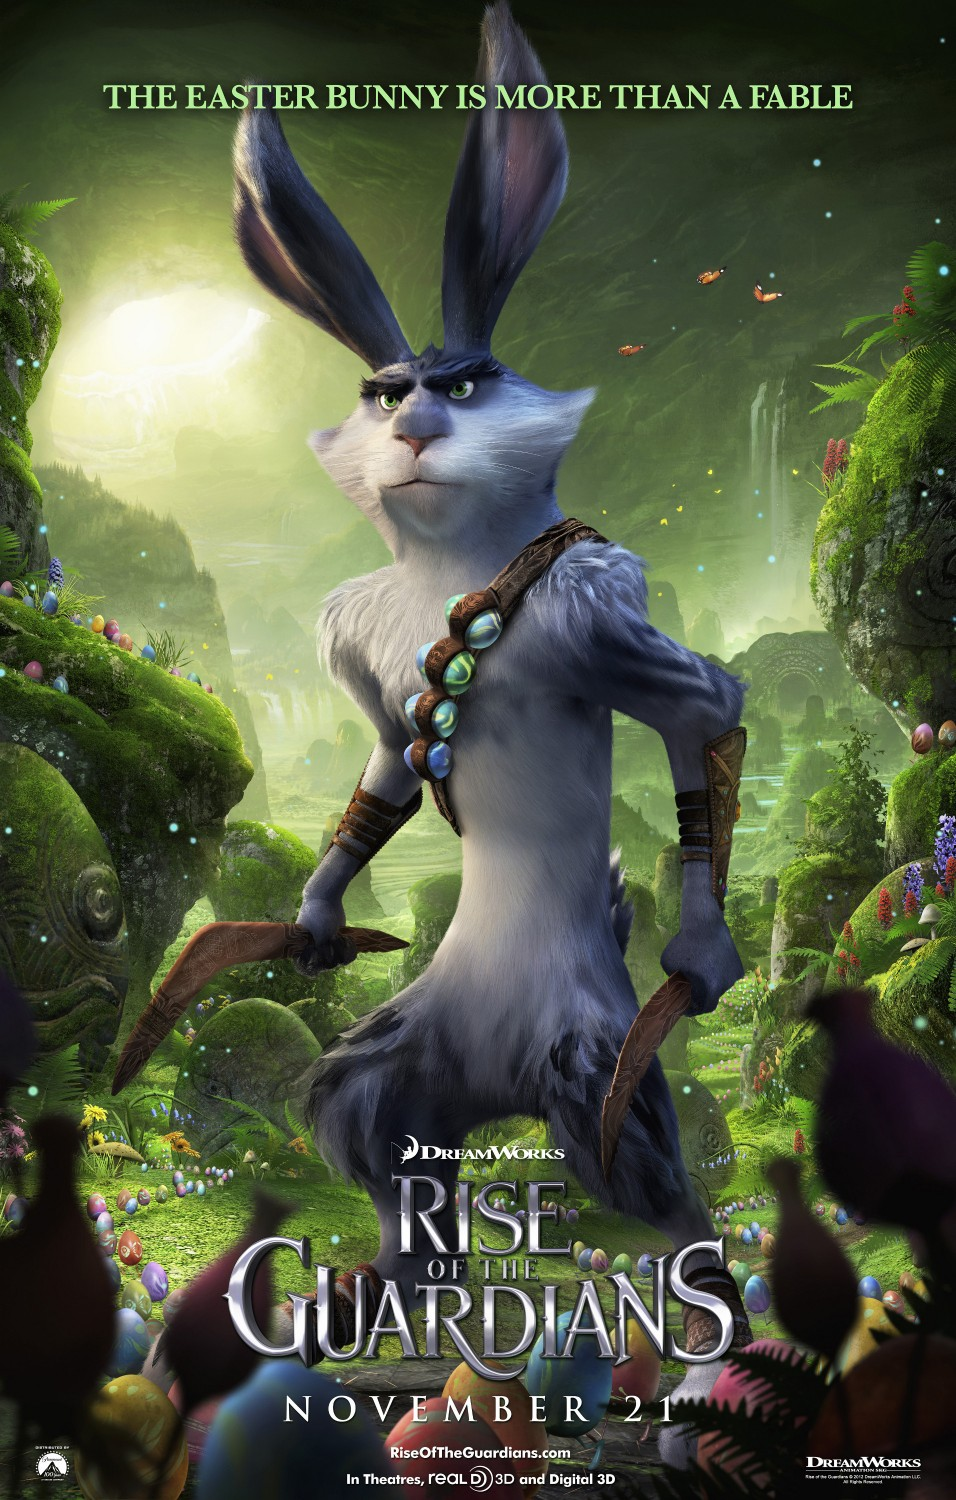 Rise of the guardians character posters easter bunny - Pics of rise of the guardians ...